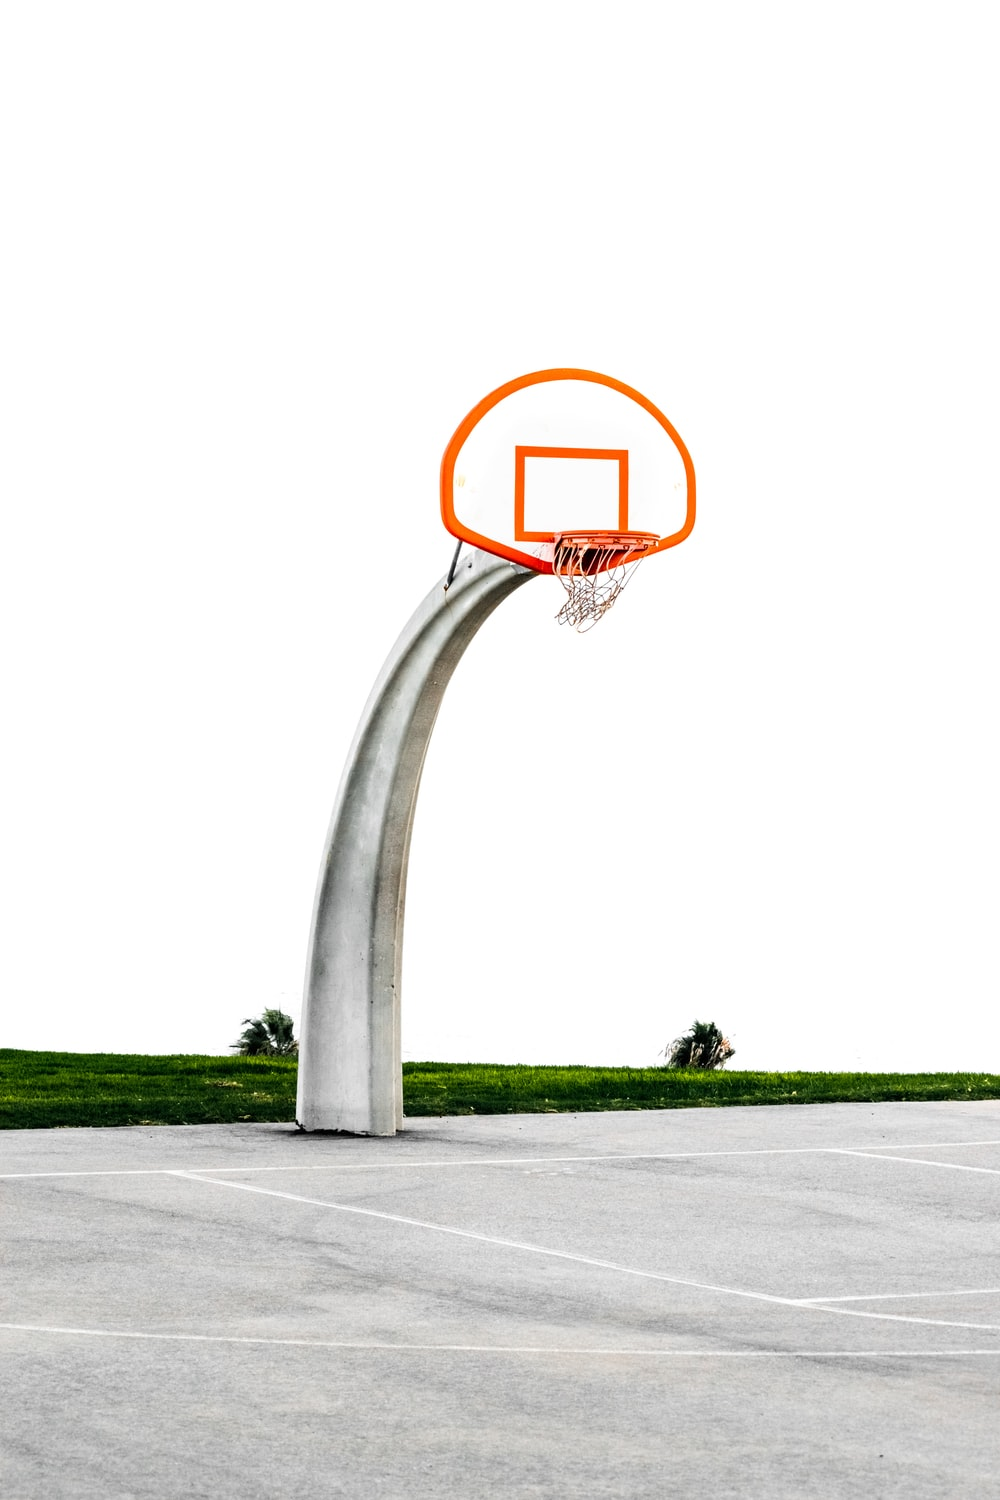 architectural photography of gray and orange basketball hoop